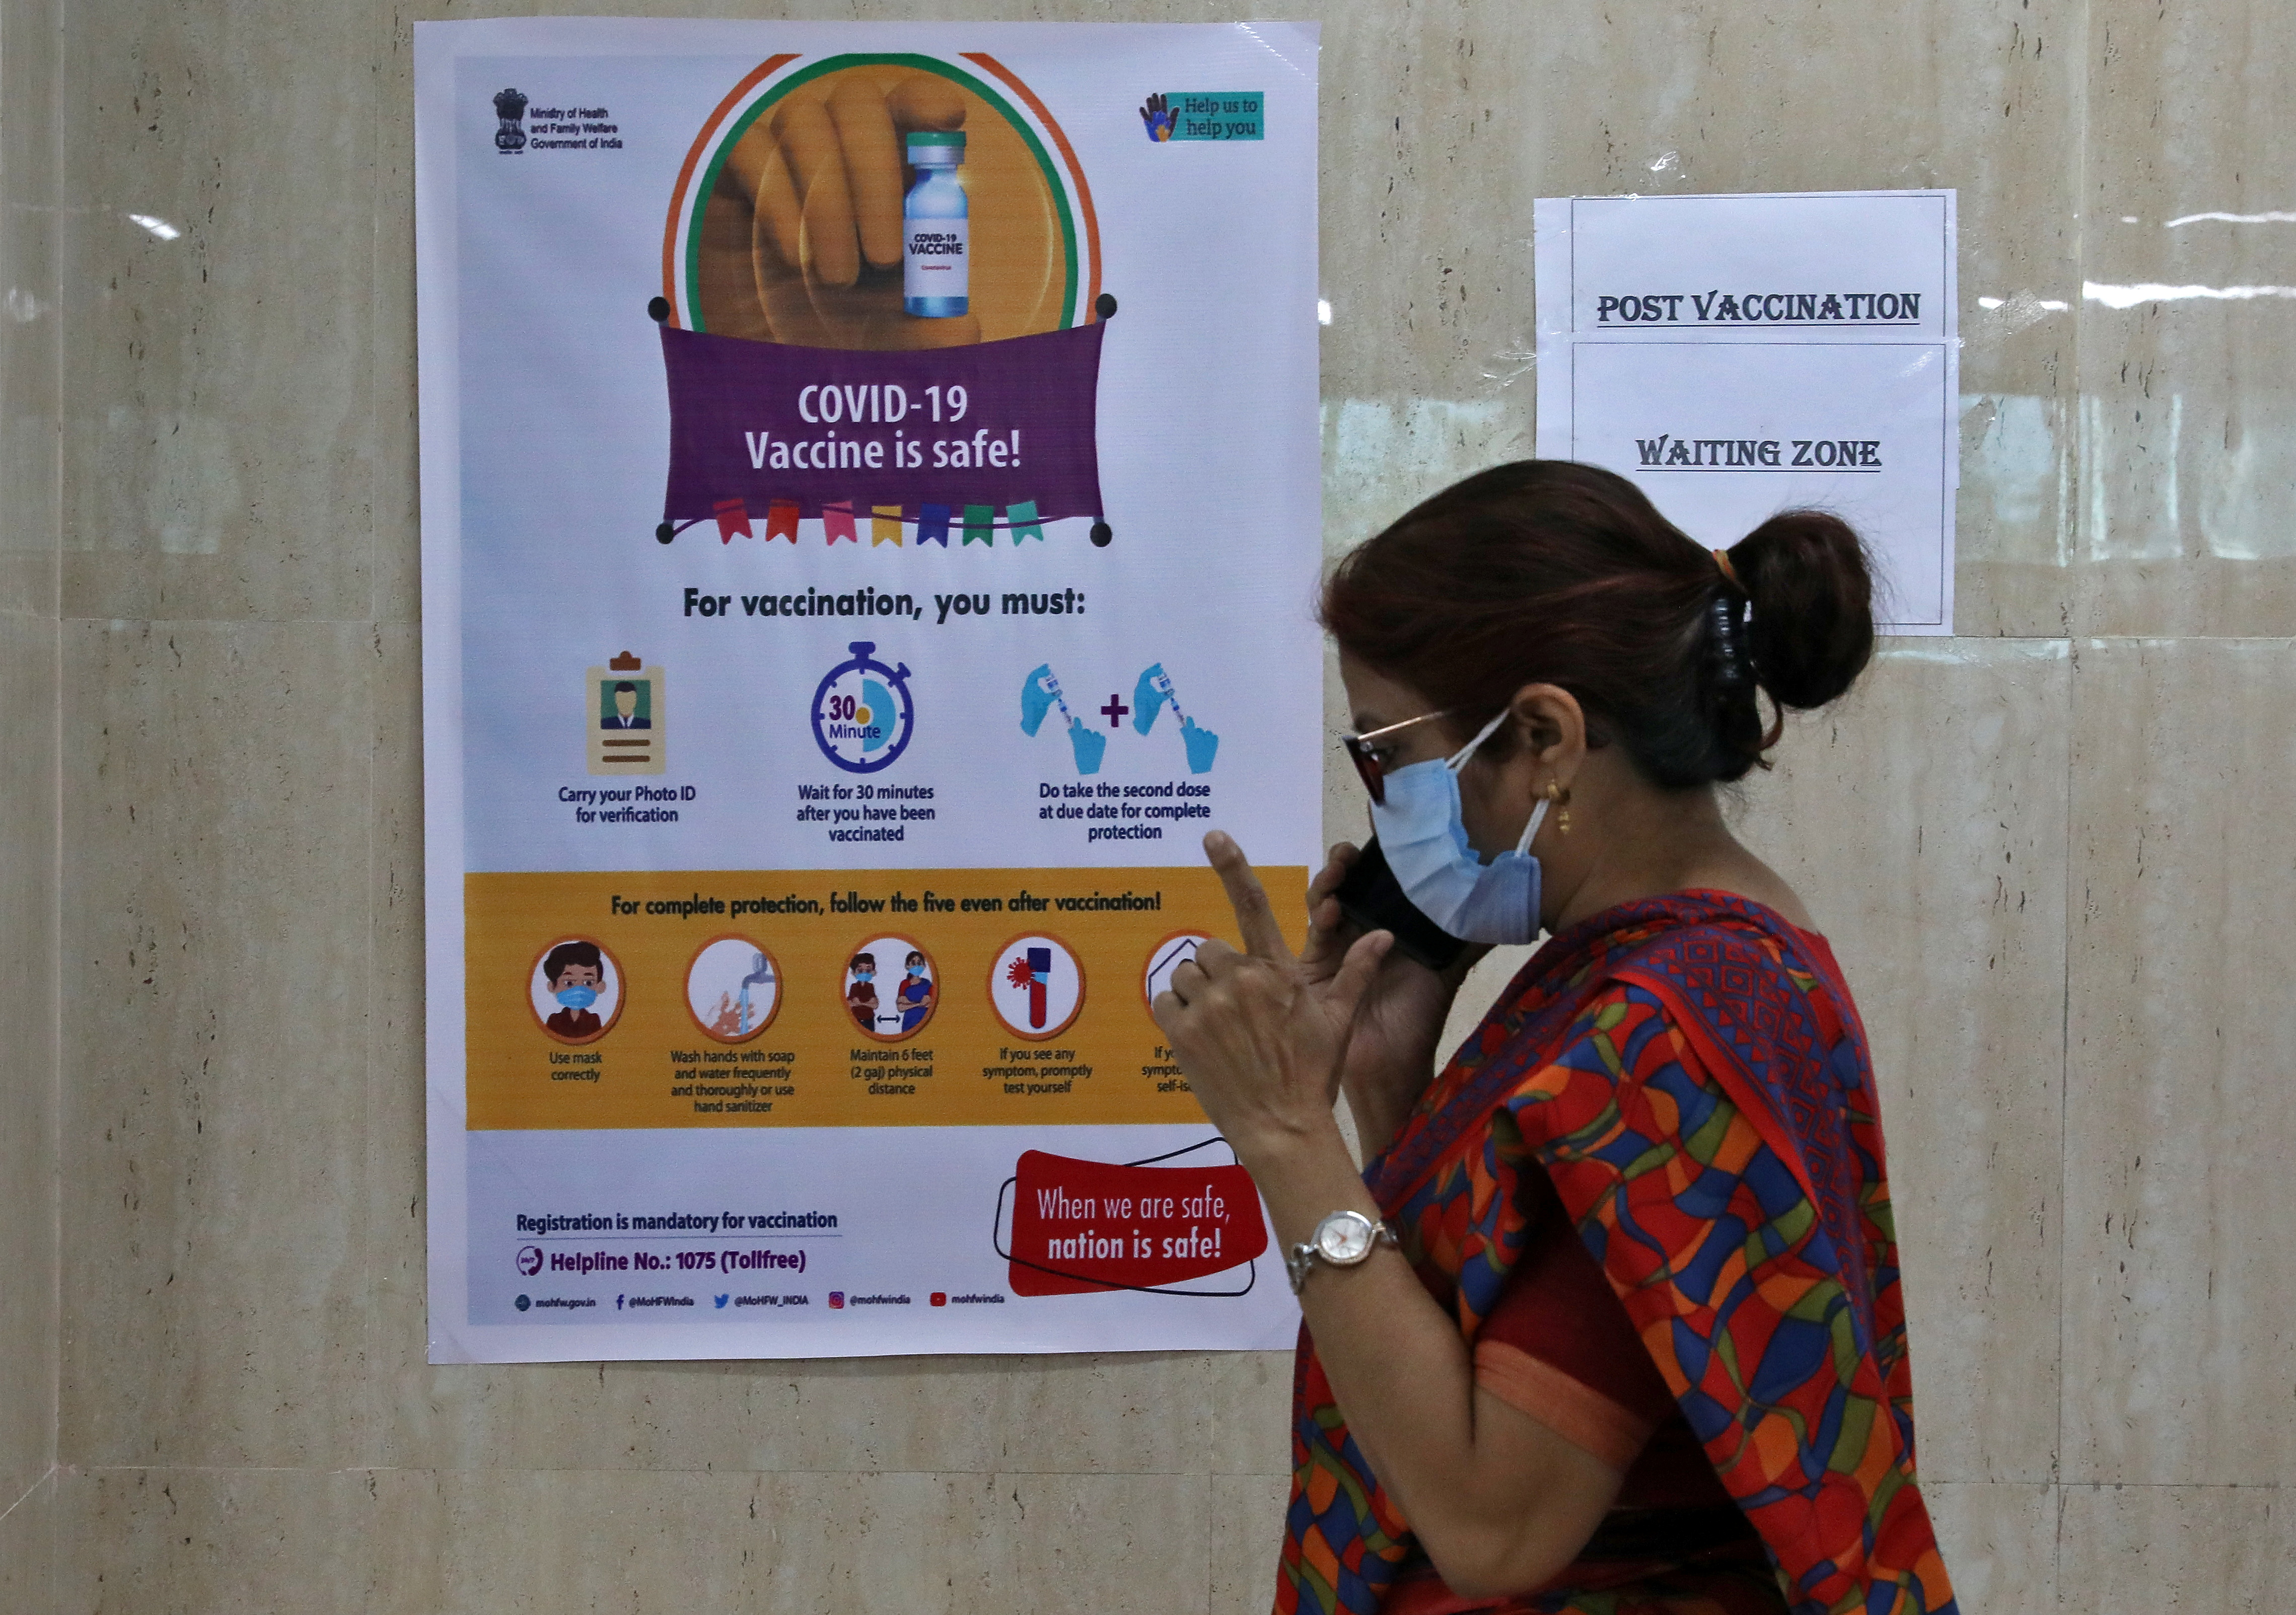 A woman speaks inside a waiting zone area at a health clinic where COVID-19 vaccination is being given to healthcare workers in Kolkata, India, February 1, 2021. REUTERS/Rupak De Chowdhuri